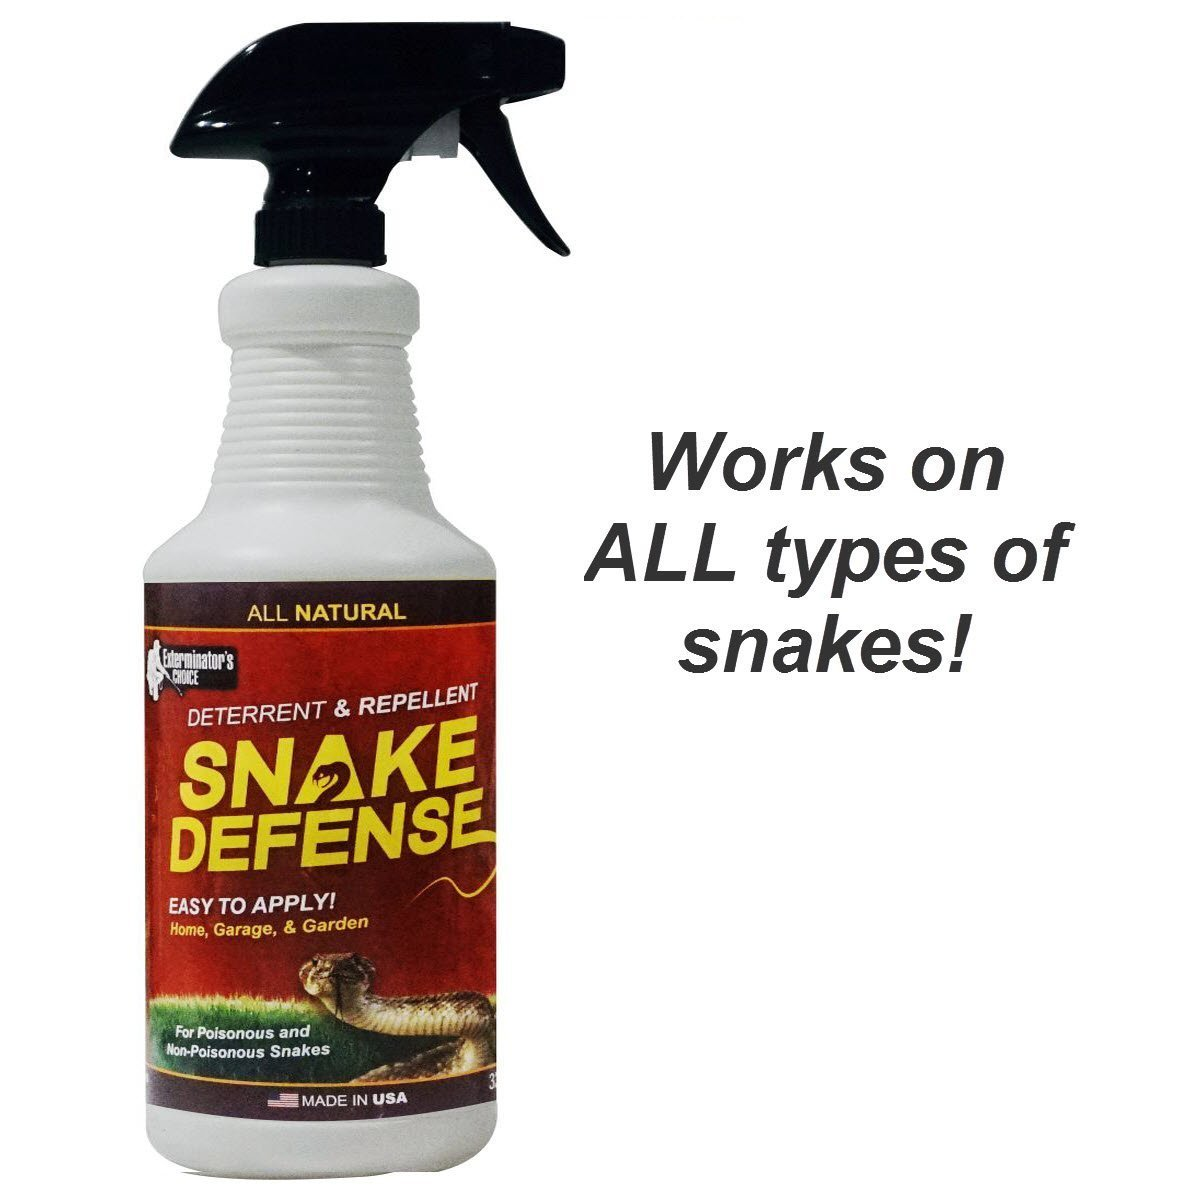 Exterminators Choice Snake Defense Natural Snake Repellent – Available in 2 Sizes